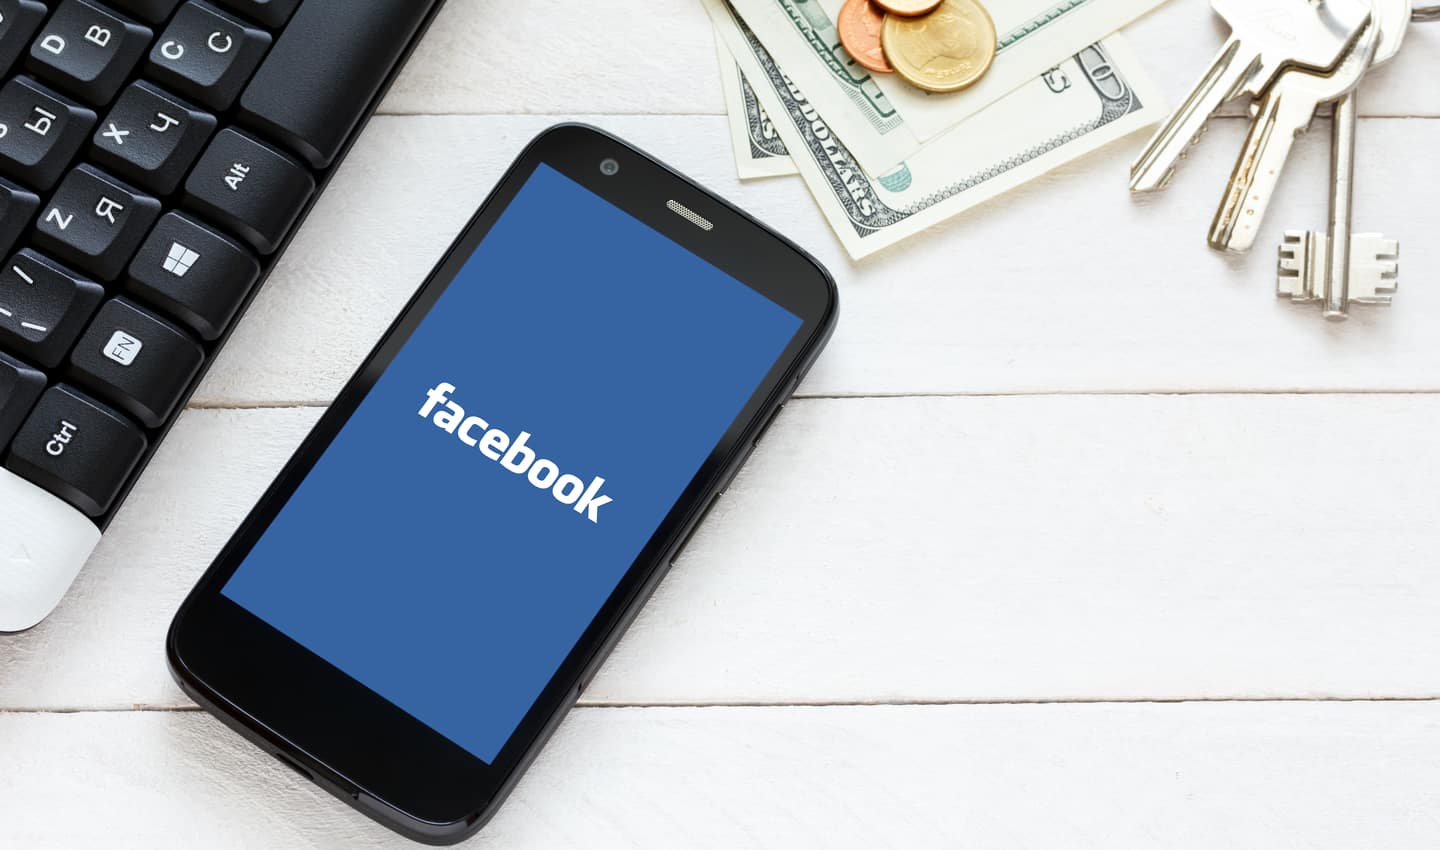 Facebook on mobile screen next to cash